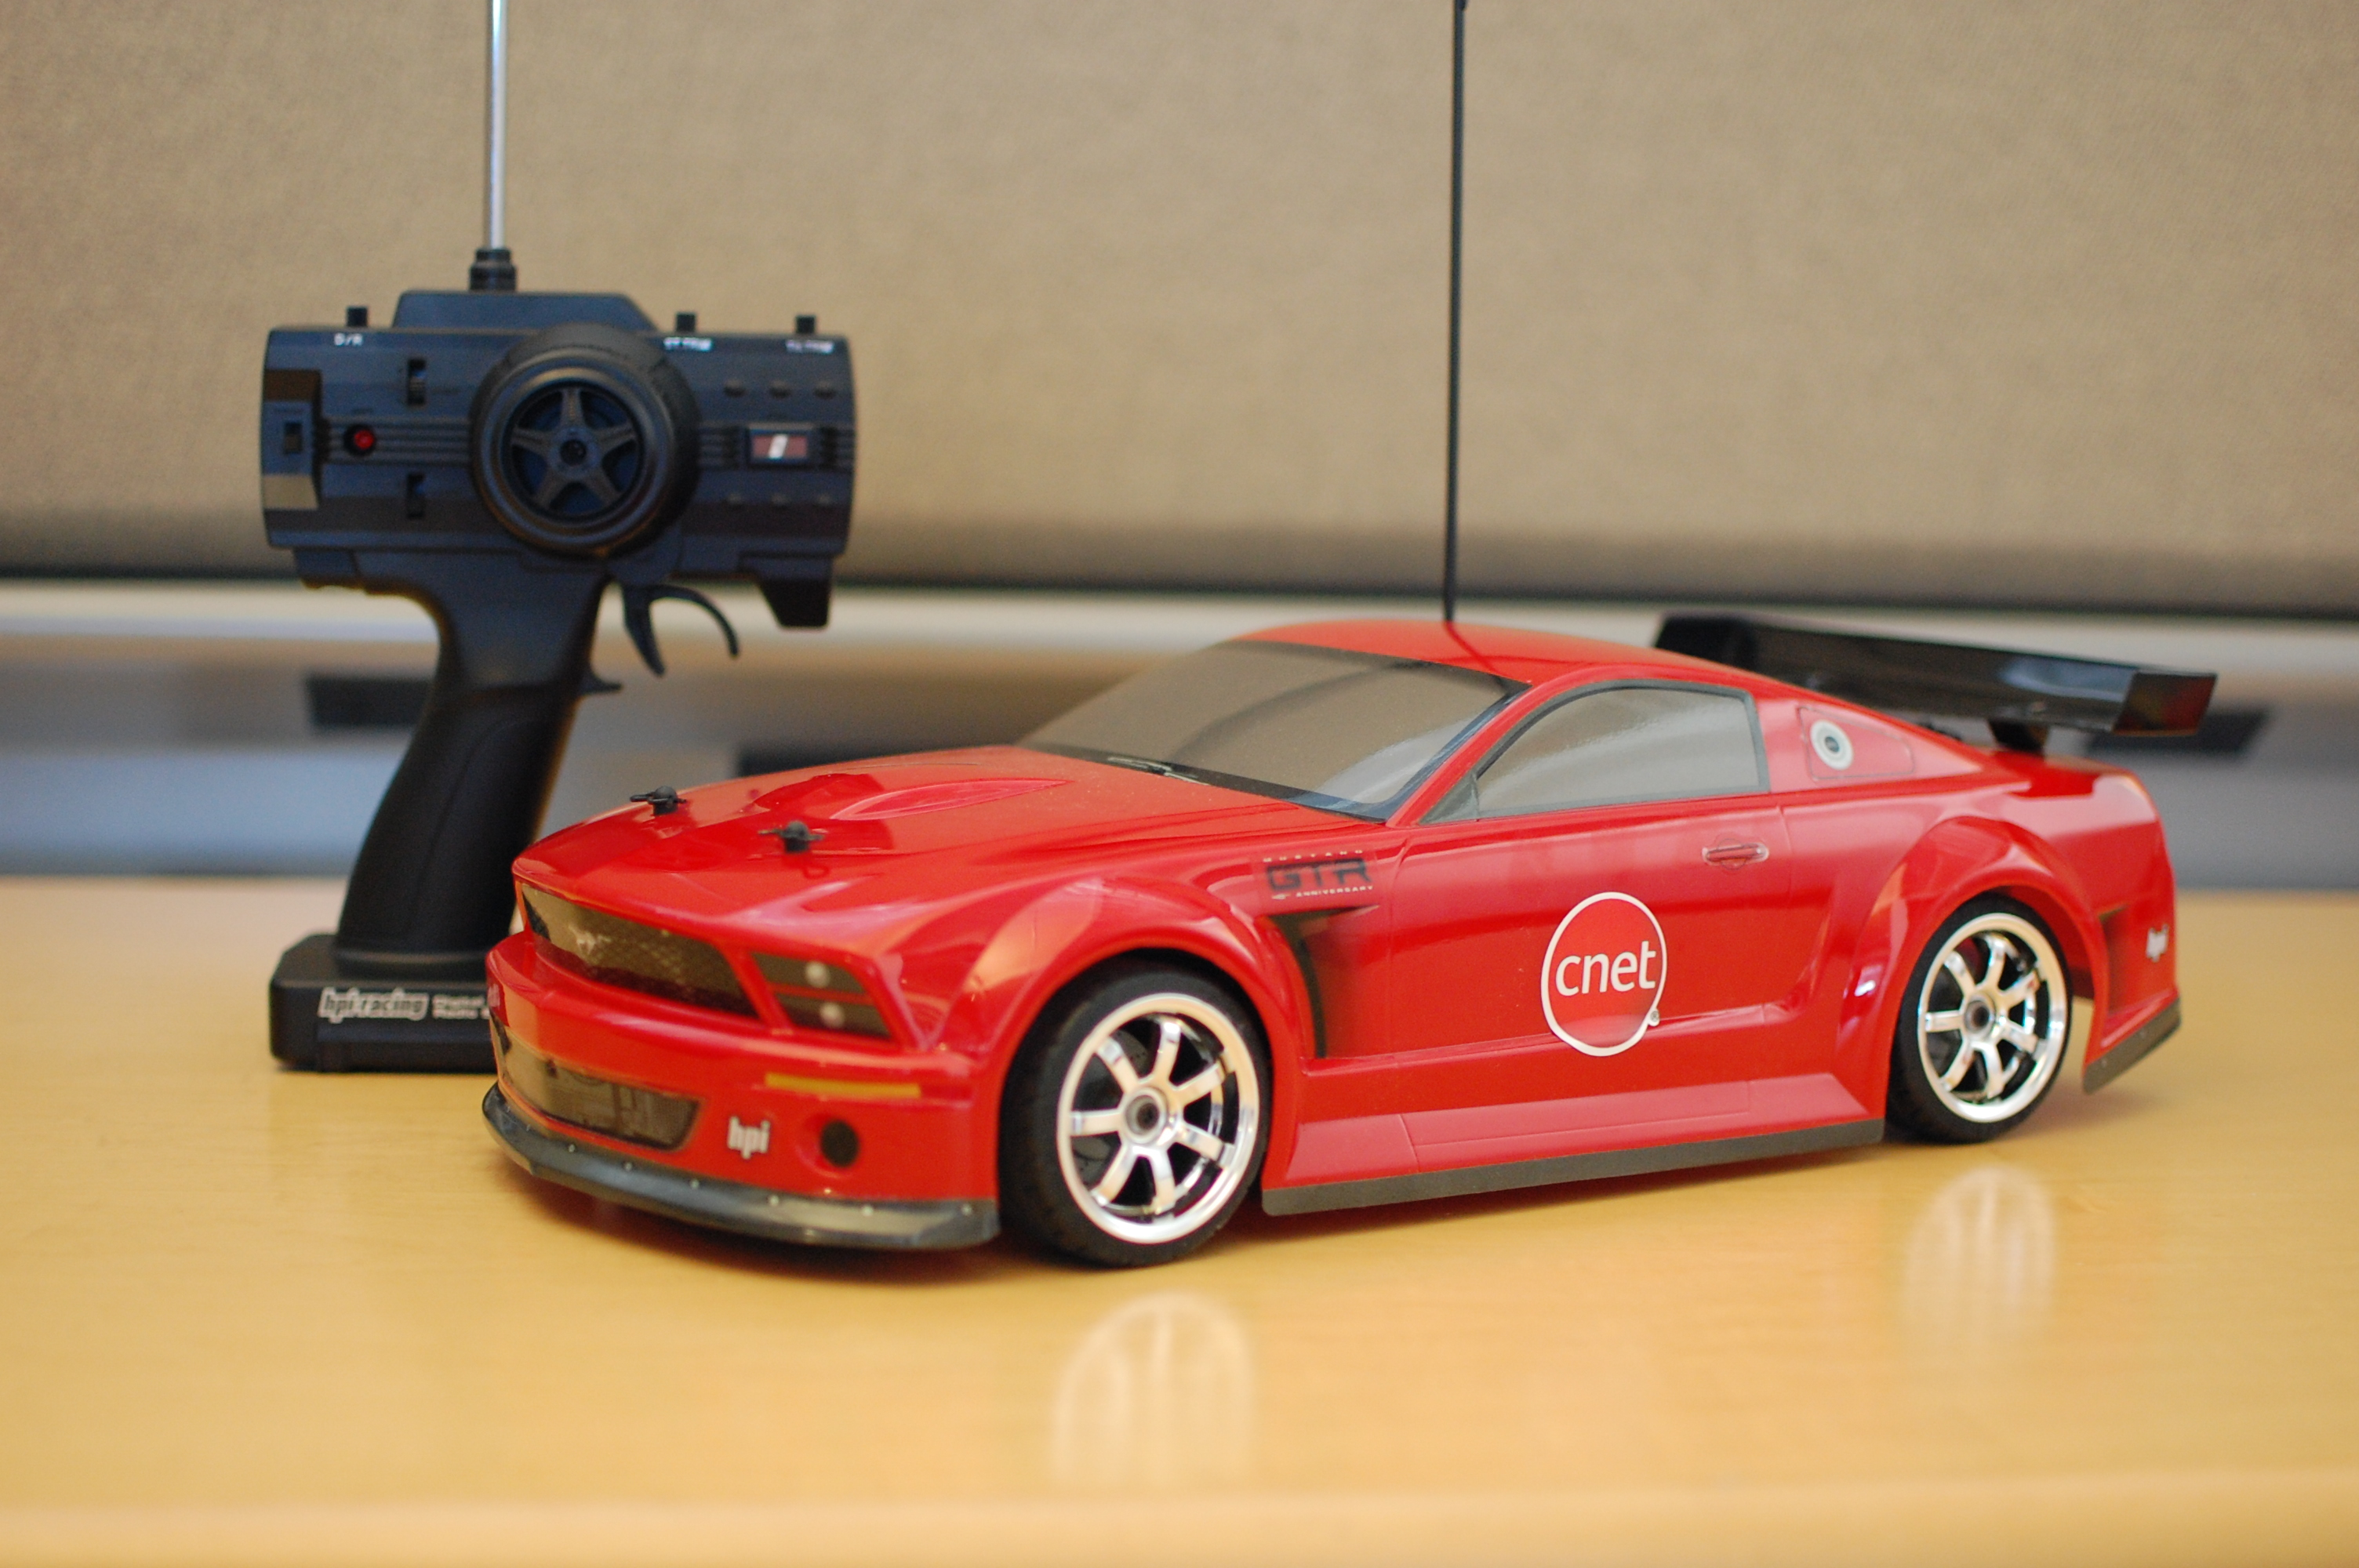 The HPI Racing E10 RTR is a good entry point into the world of R/C cars.